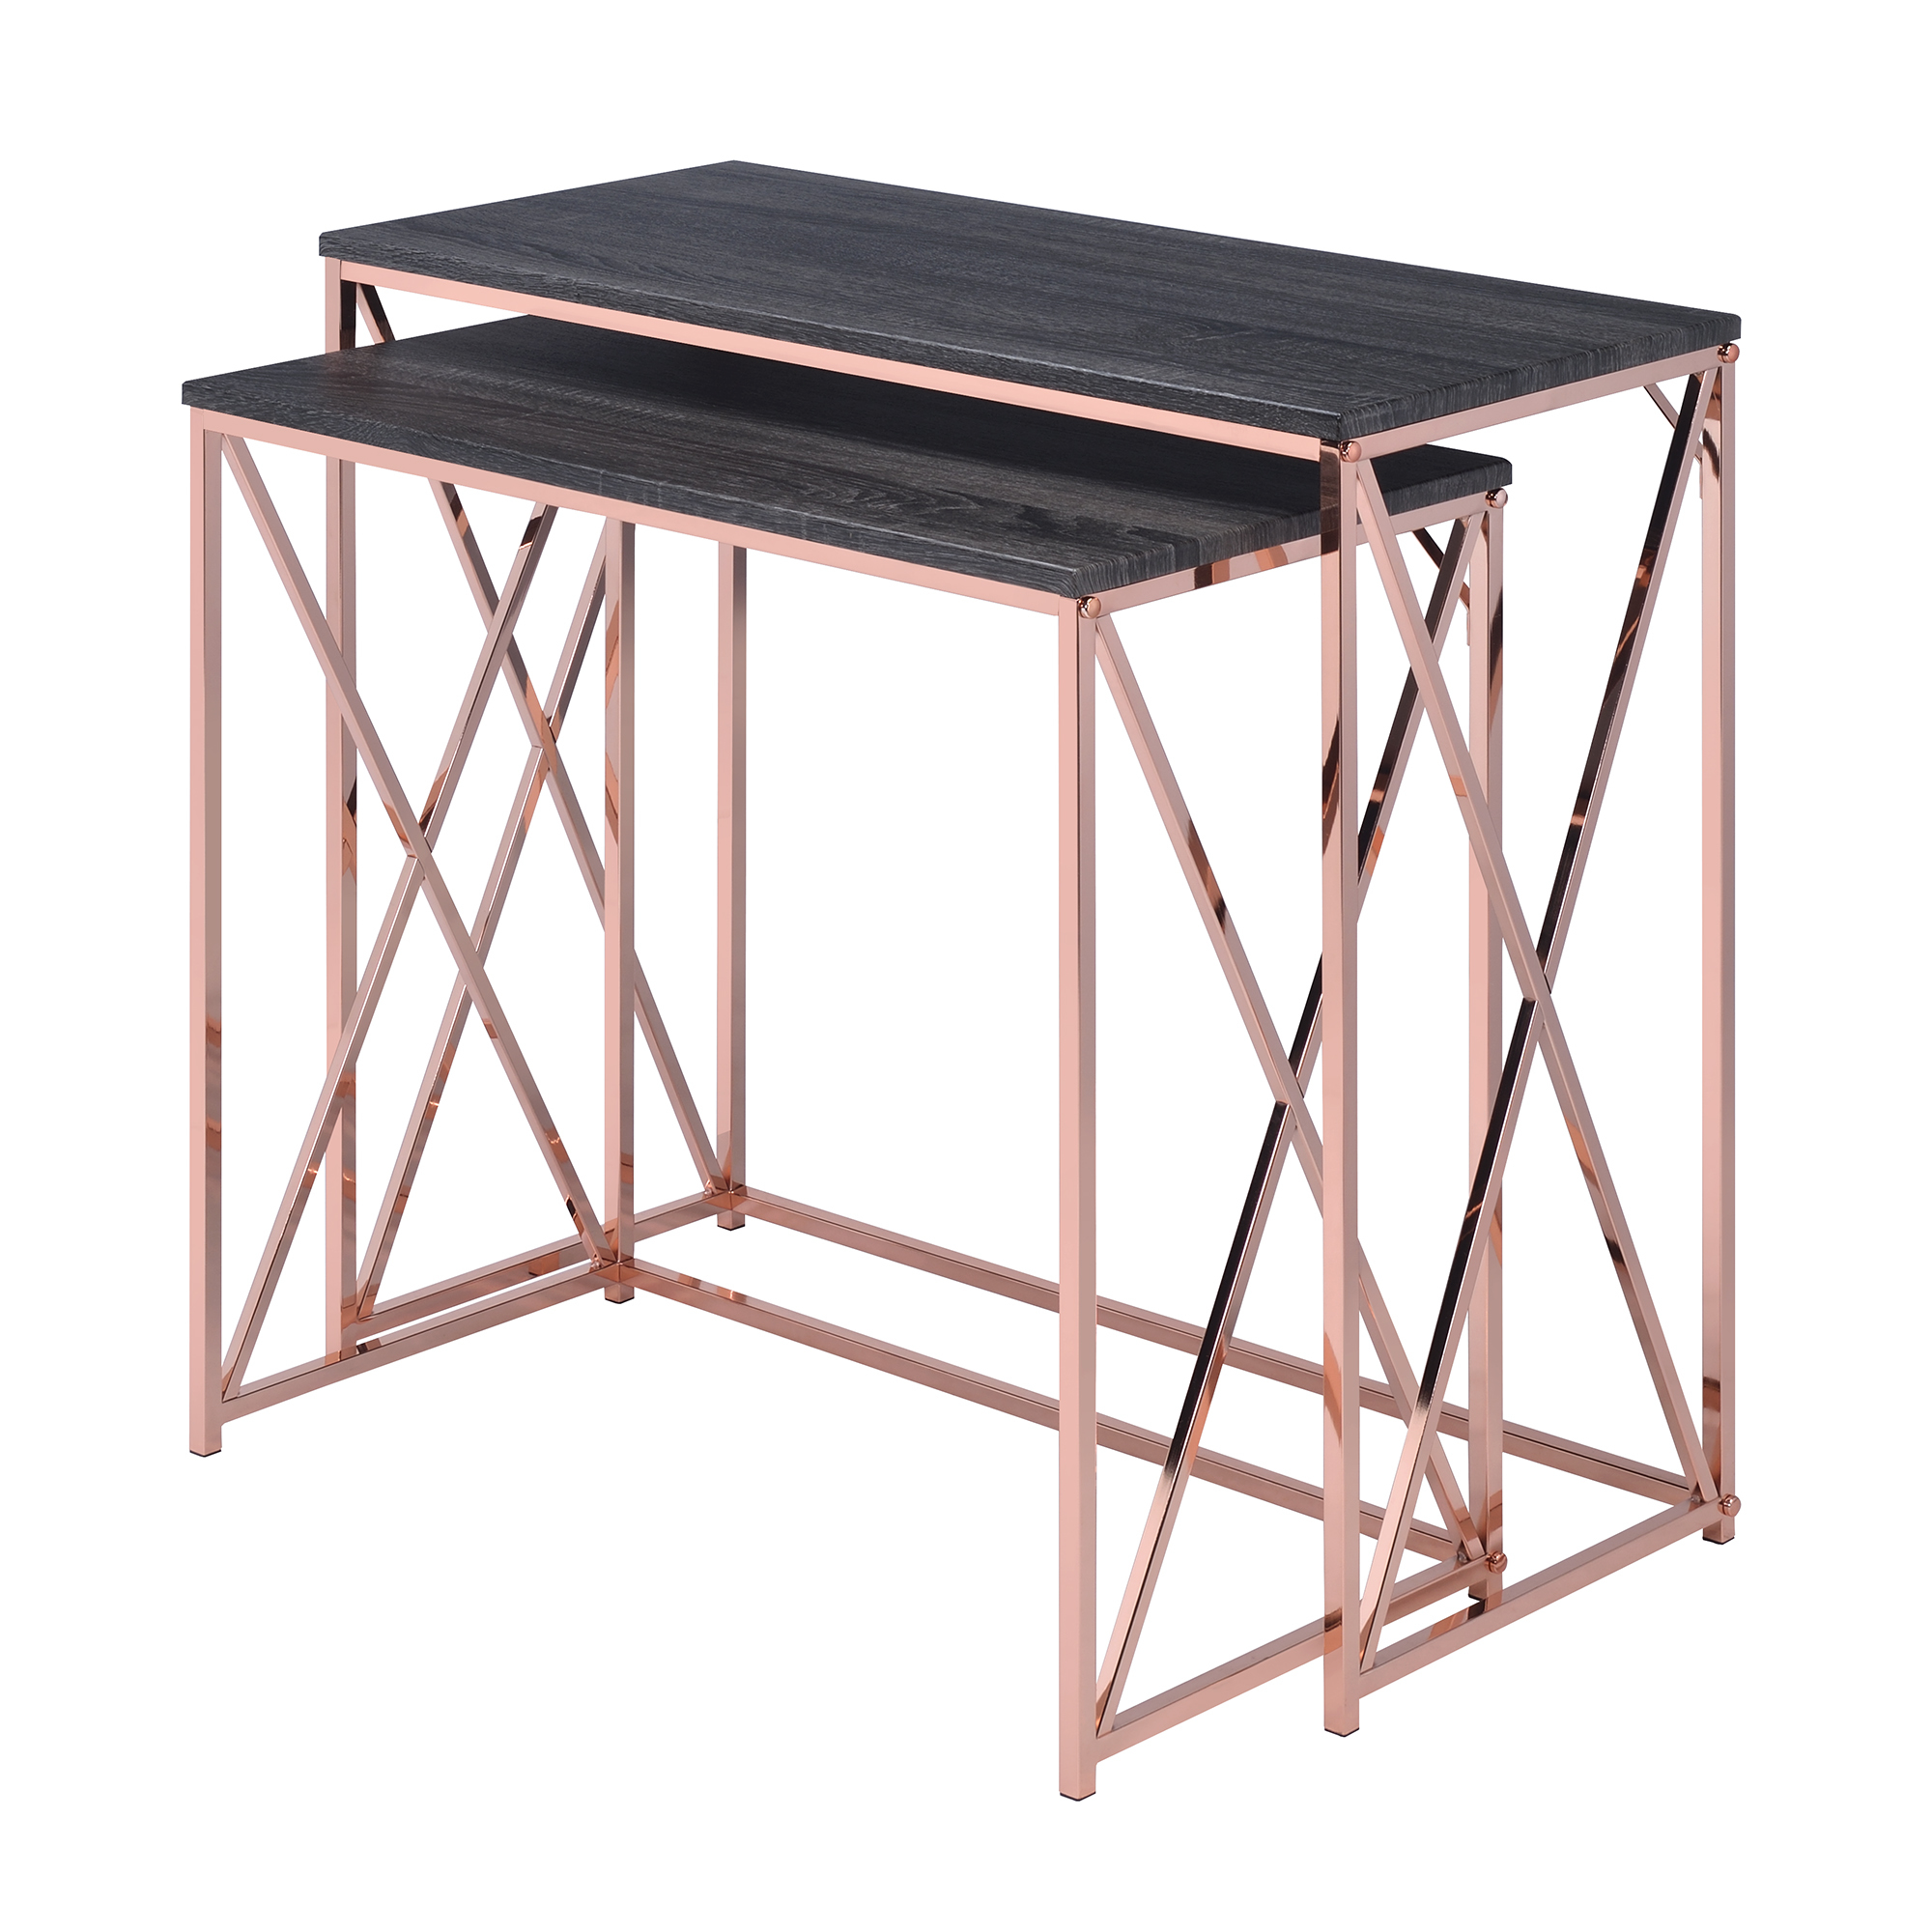 SKU #TPWT1928 Audrey Nesting Console Table Is Also Sometimes Listed Under  The Following Manufacturer Numbers: MECSWDGD